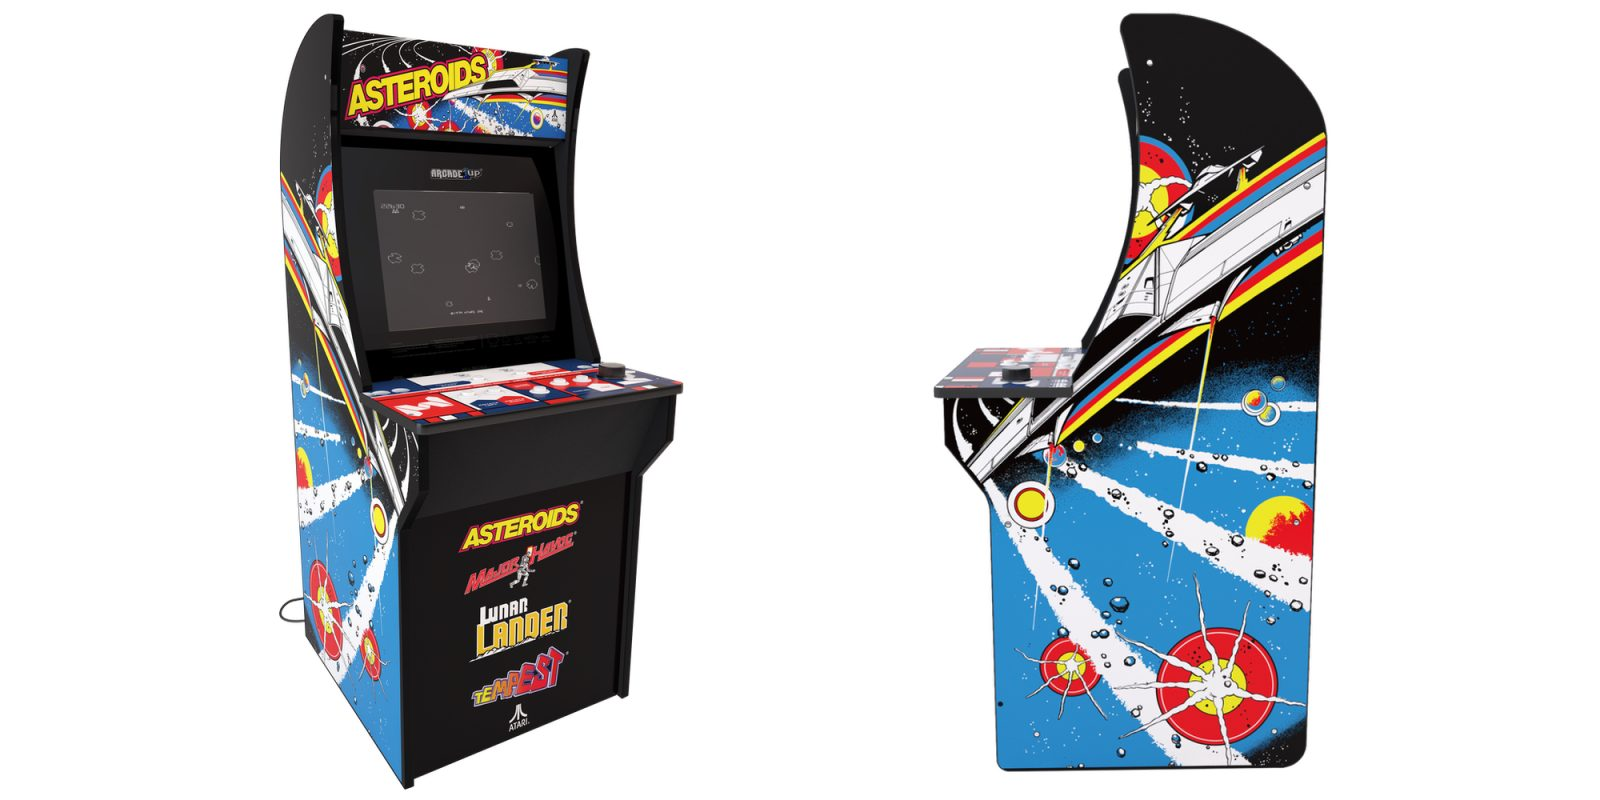 Every game room needs Arcade1Up's Asteroids Machine, now at